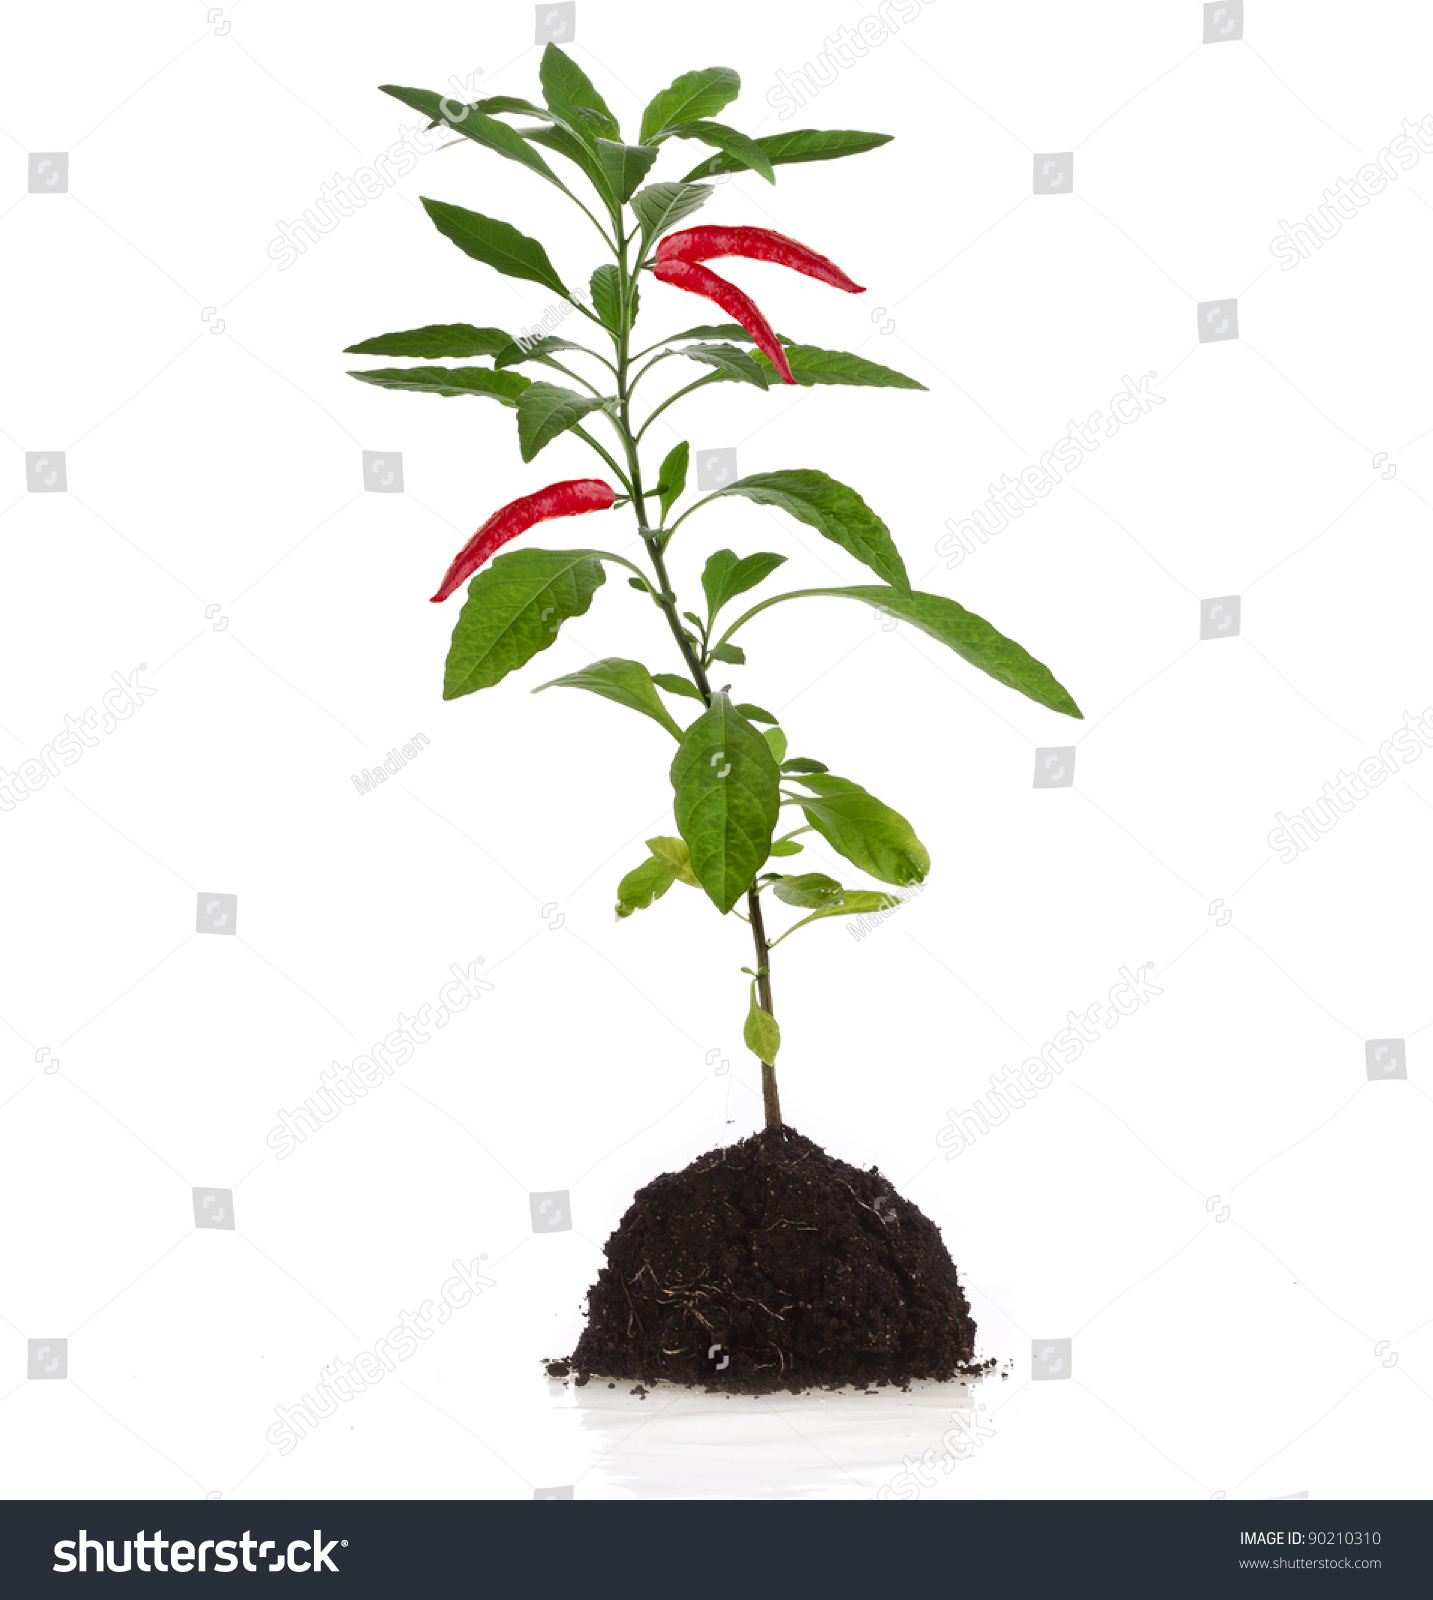 Red Hot Chili Pepper Plant Seedling Stock Photo 90210310 ...